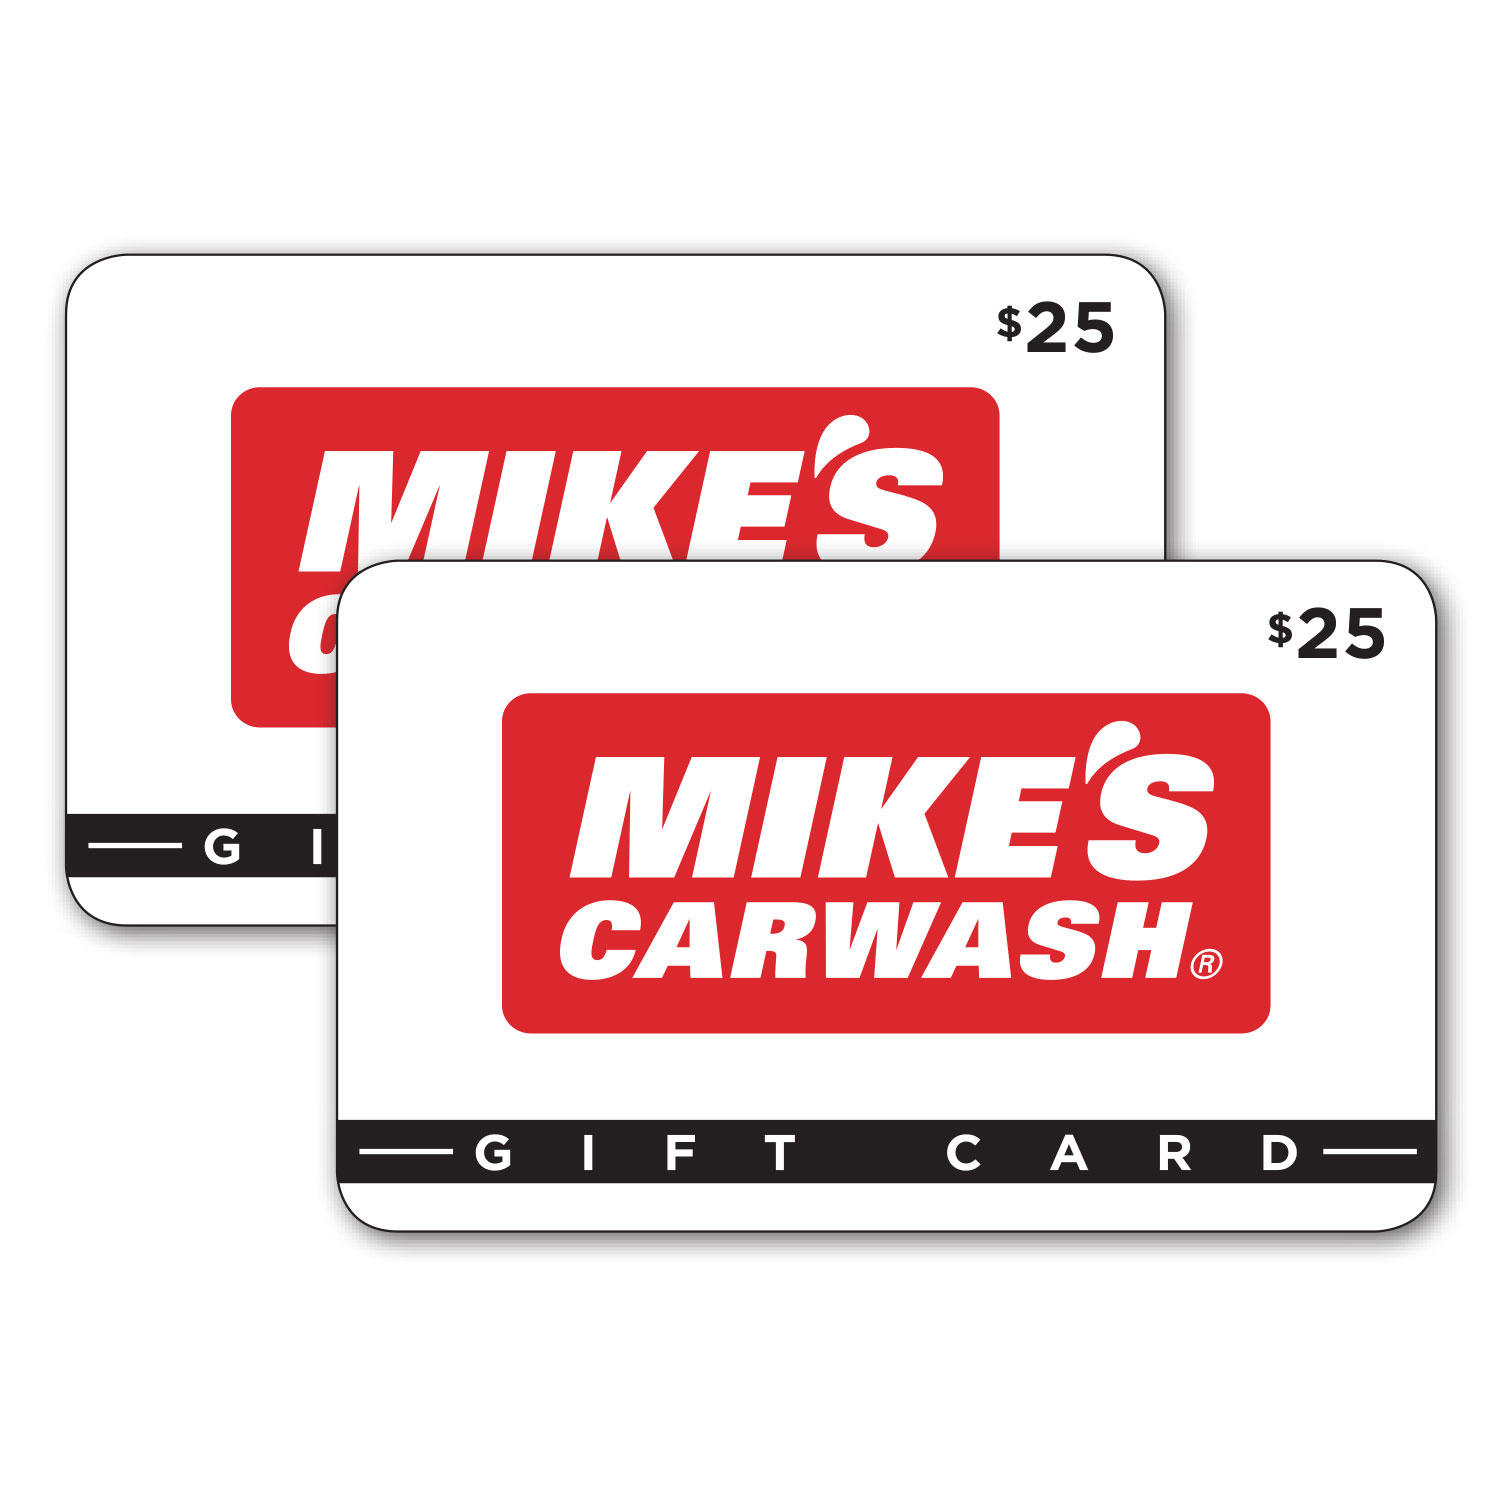 $50 (2 x $25) Mike's Carwash Gift Cards